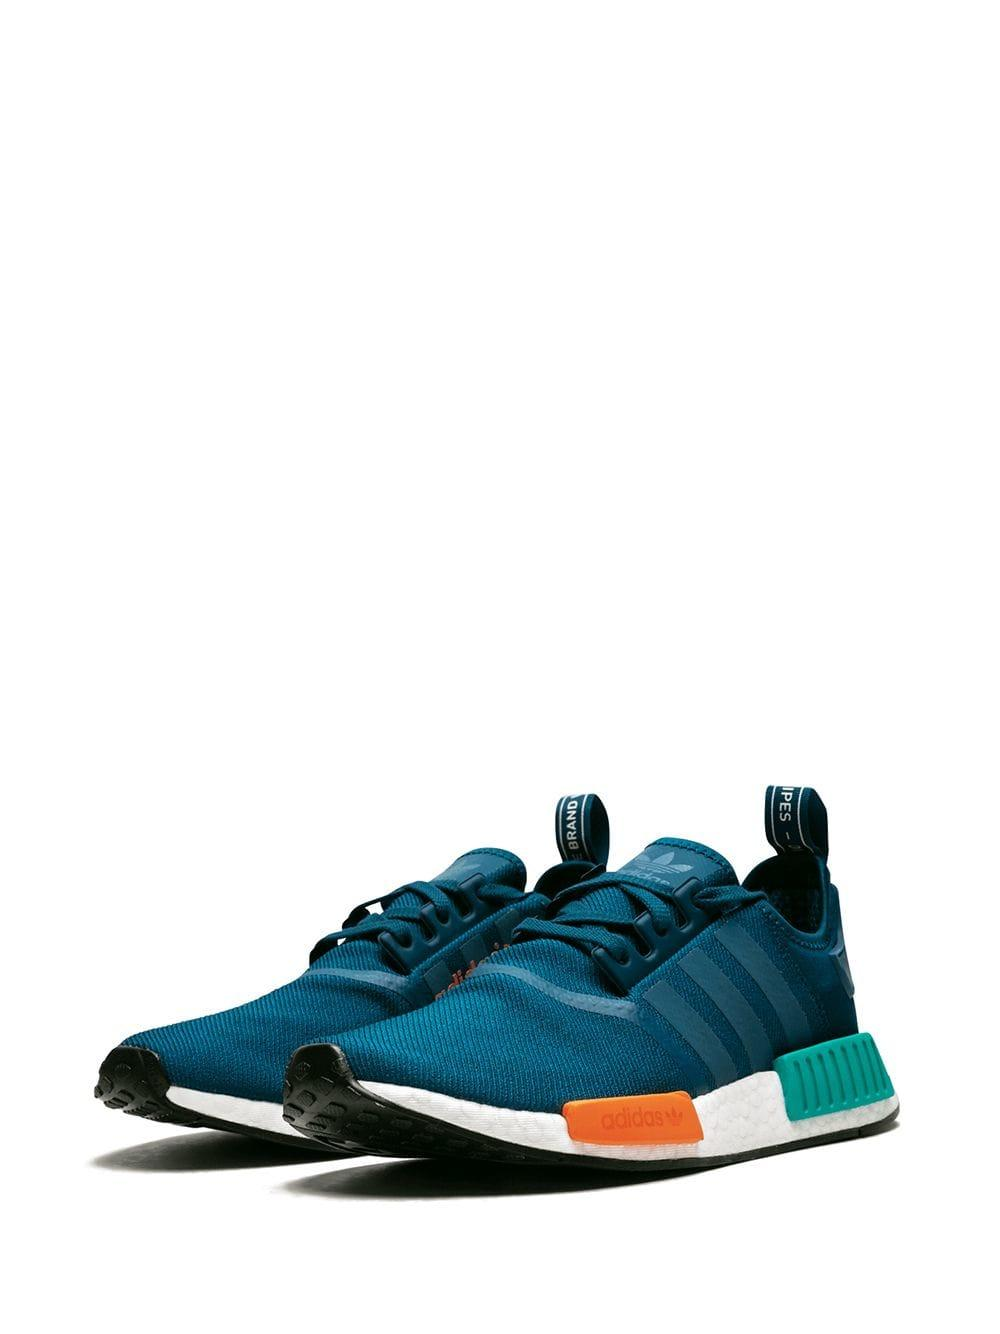 Adidas - Blue Nmd R1 Sneakers for Men - Lyst. View fullscreen 4f10b43de